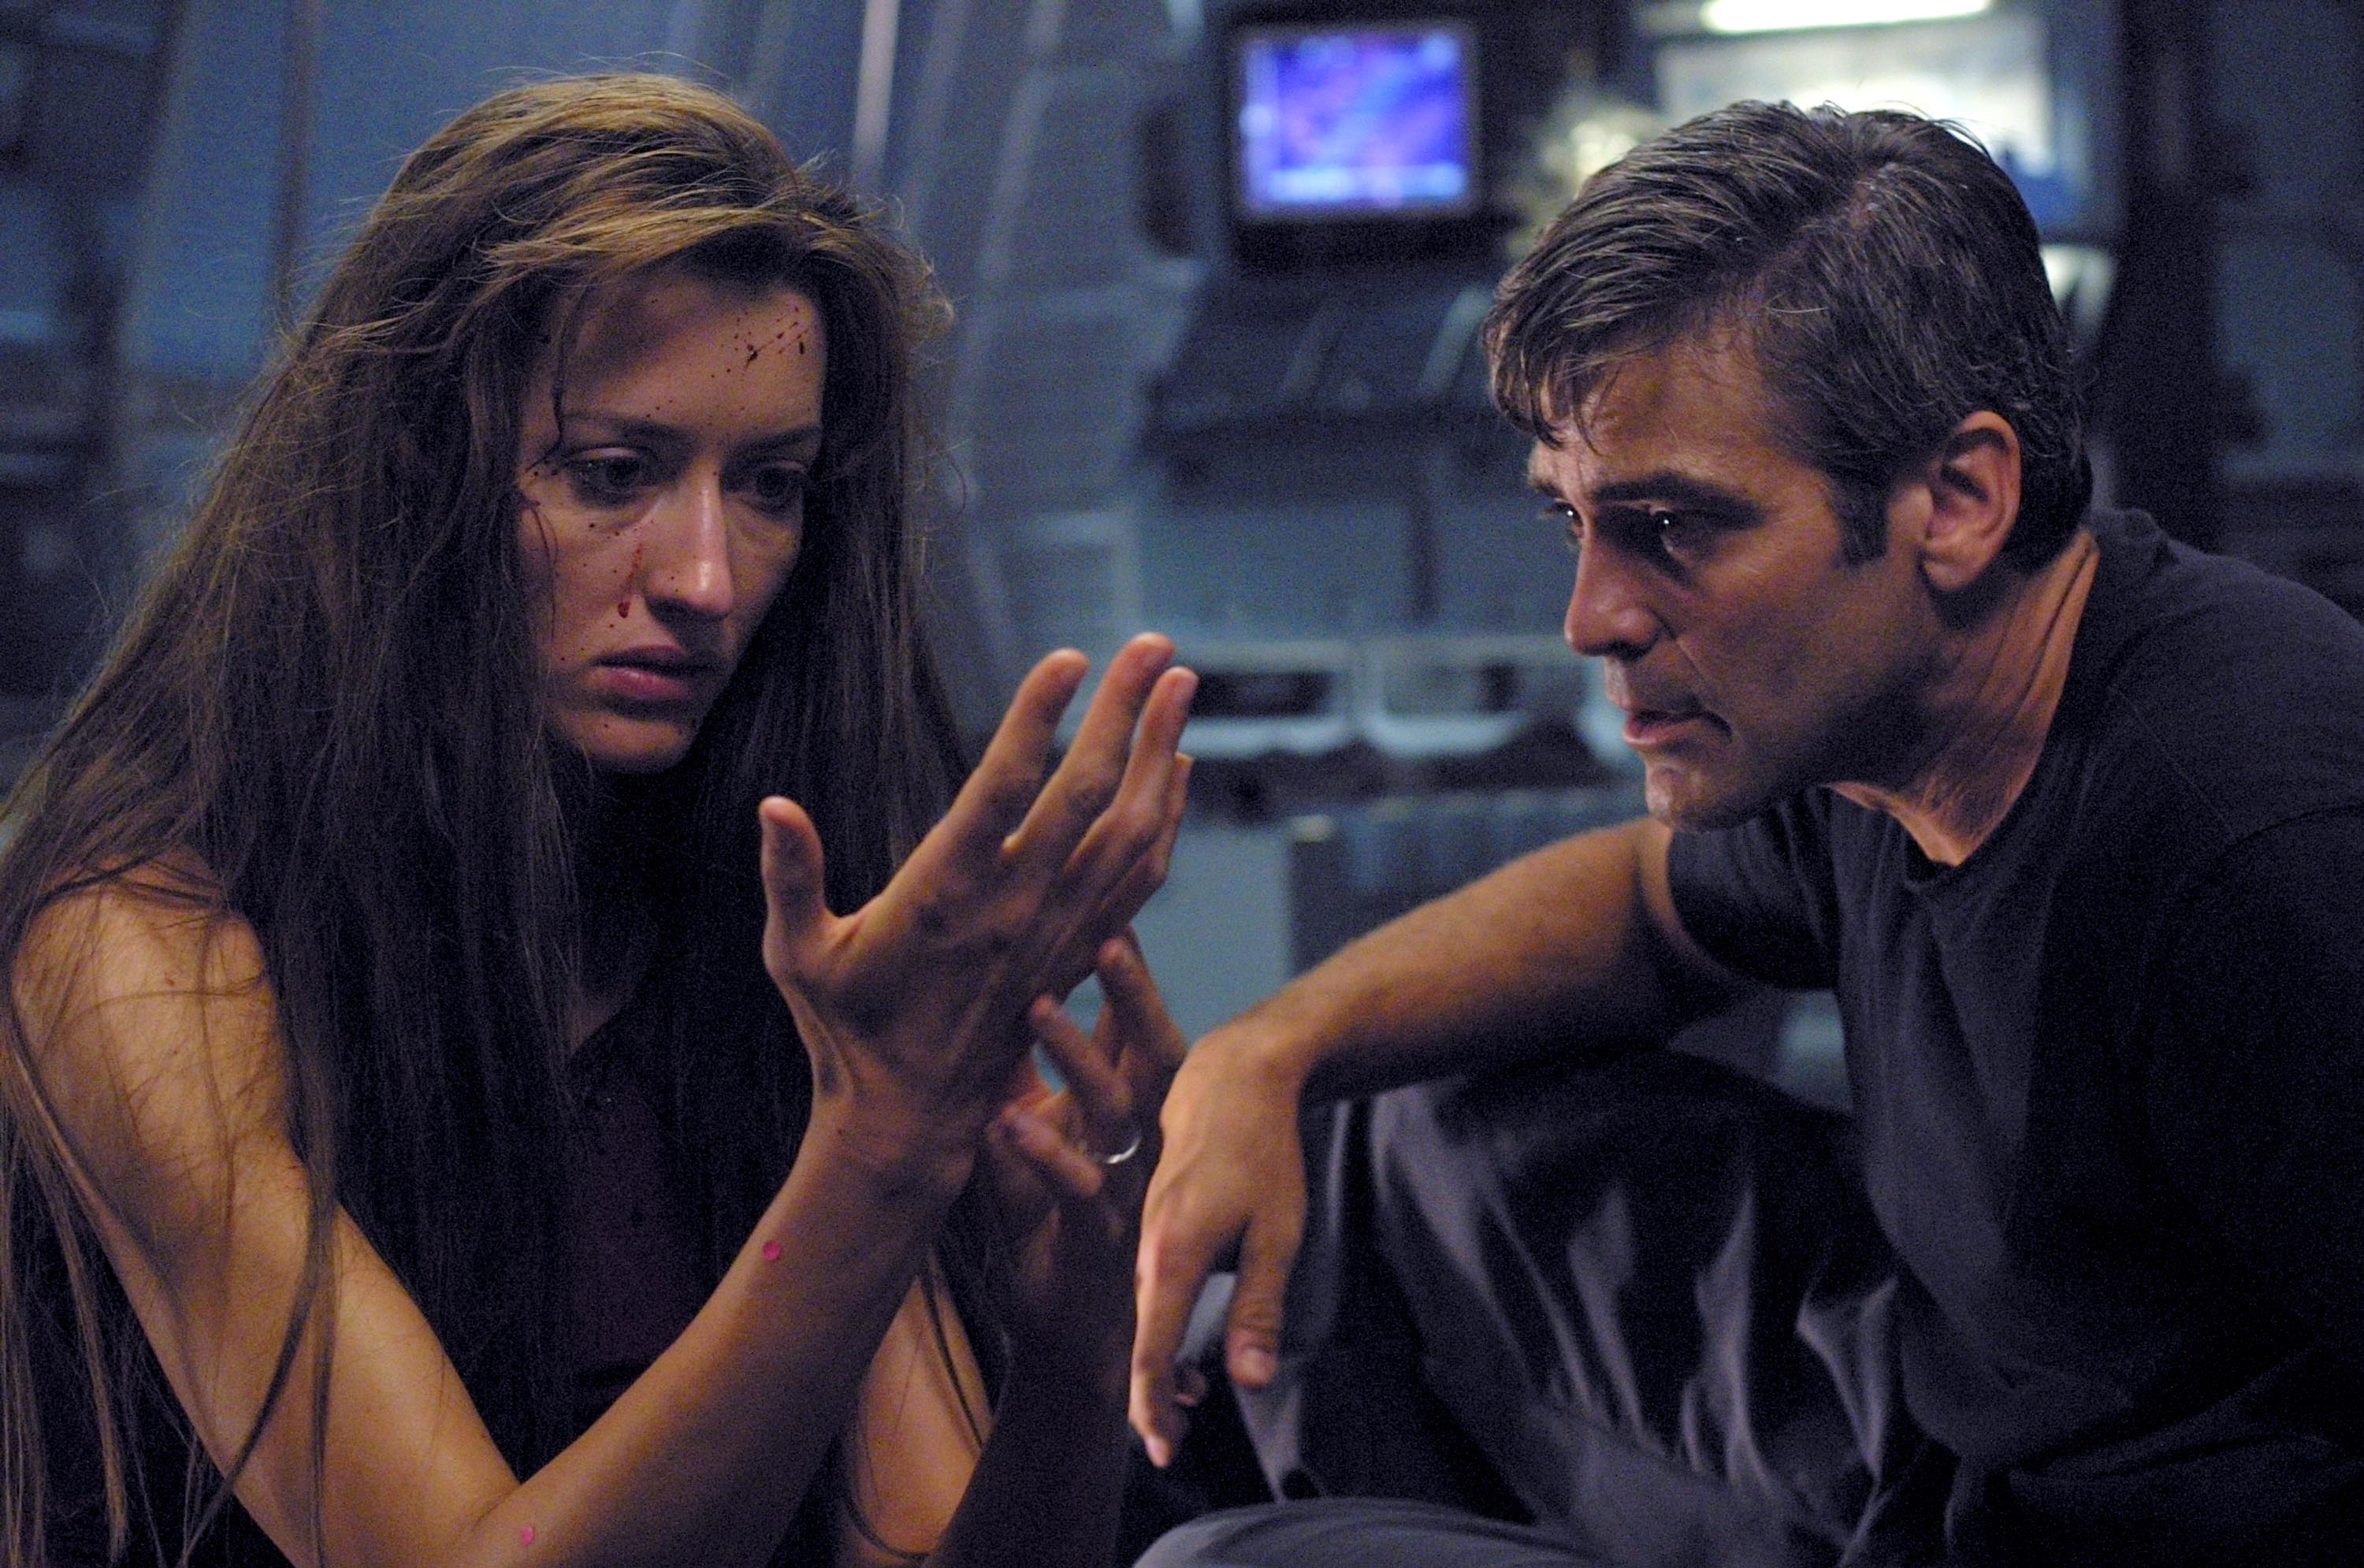 Natascha McElhone and George Clooney in Solaris